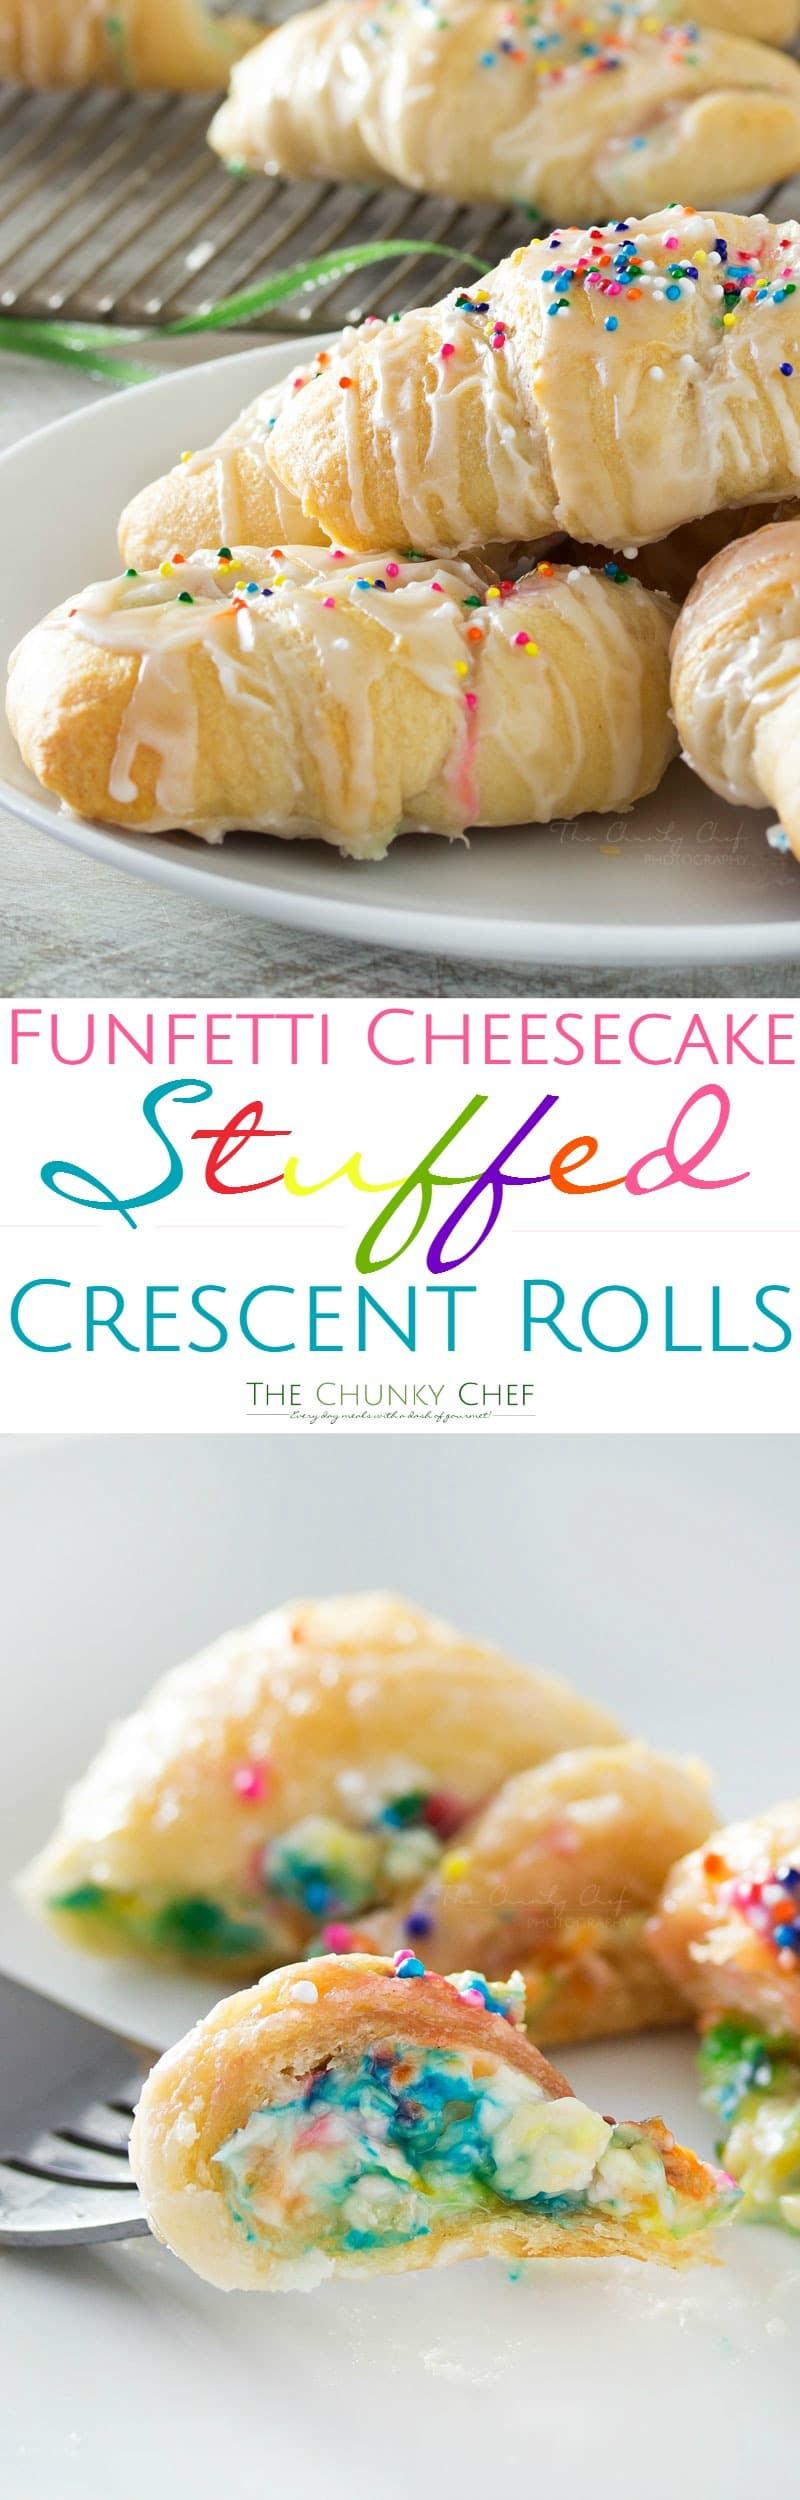 Funfetti-Cheesecake-Stuffed-Crescent-Rolls - Buttery crescent rolls are filled with an easy funfetti cheesecake spread, baked until golden, and drizzled with a vanilla glaze!! Perfect for kids! | http://thechunkychef.com